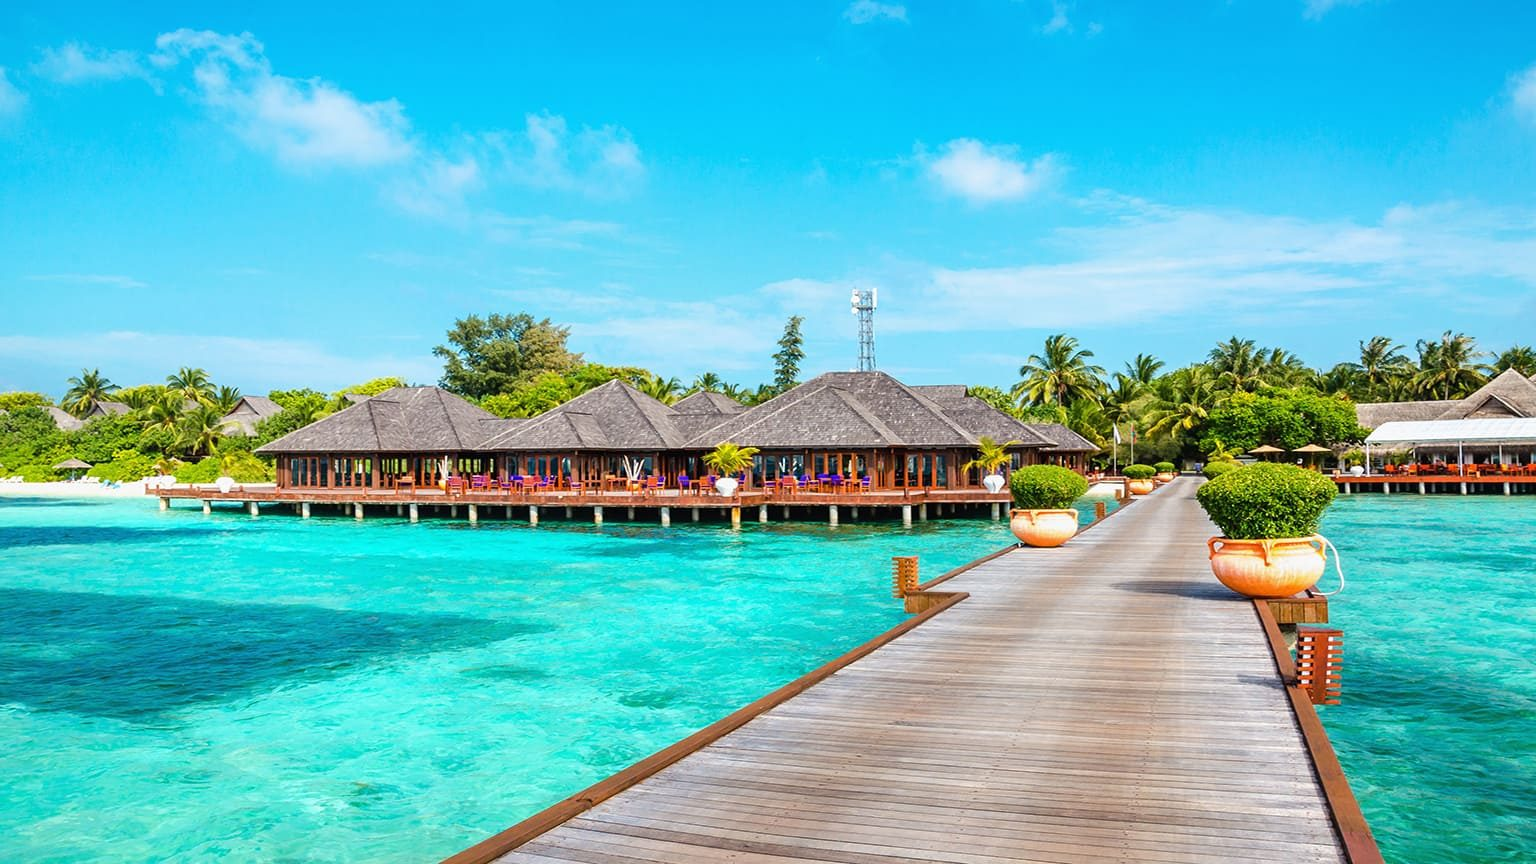 Wooden pier with tall palm trees, Maldives